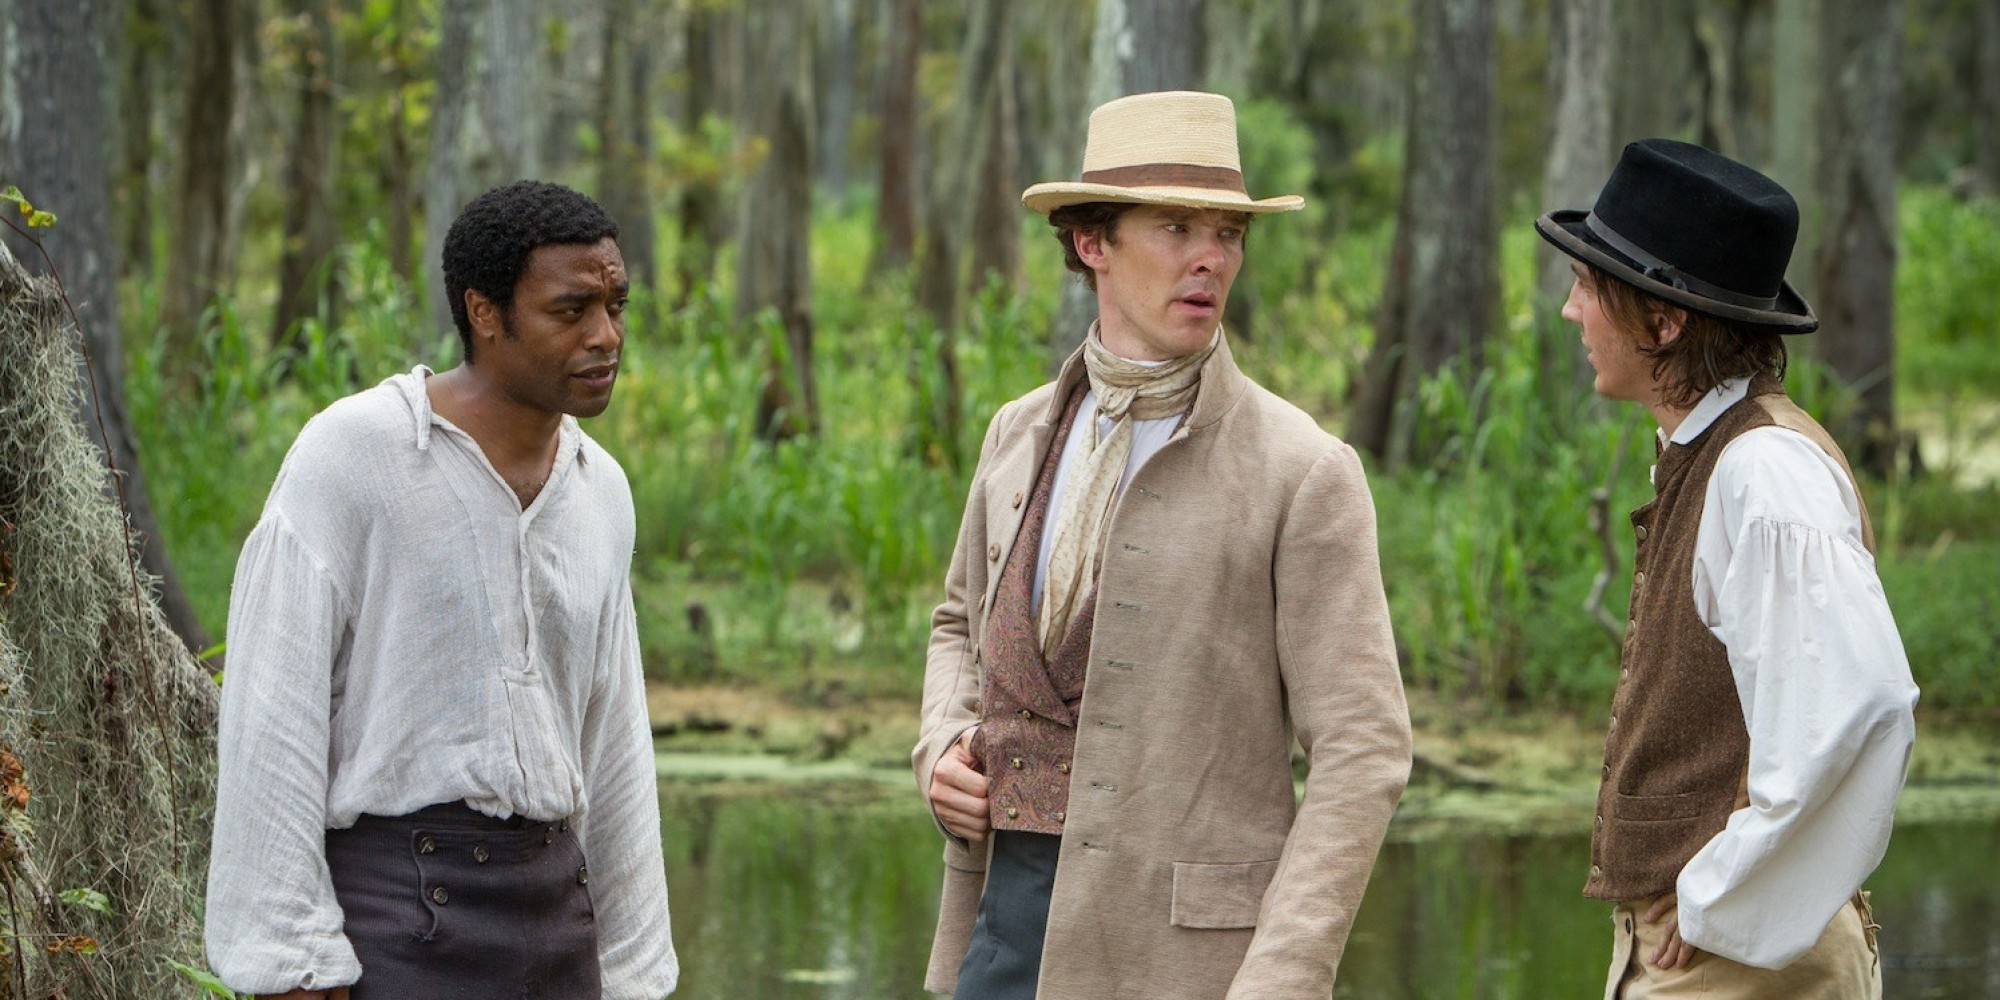 Paul Dano, Chiwetel Ejiofor, and Benedict Cumberbatch in 12 Years a Slave (2013)